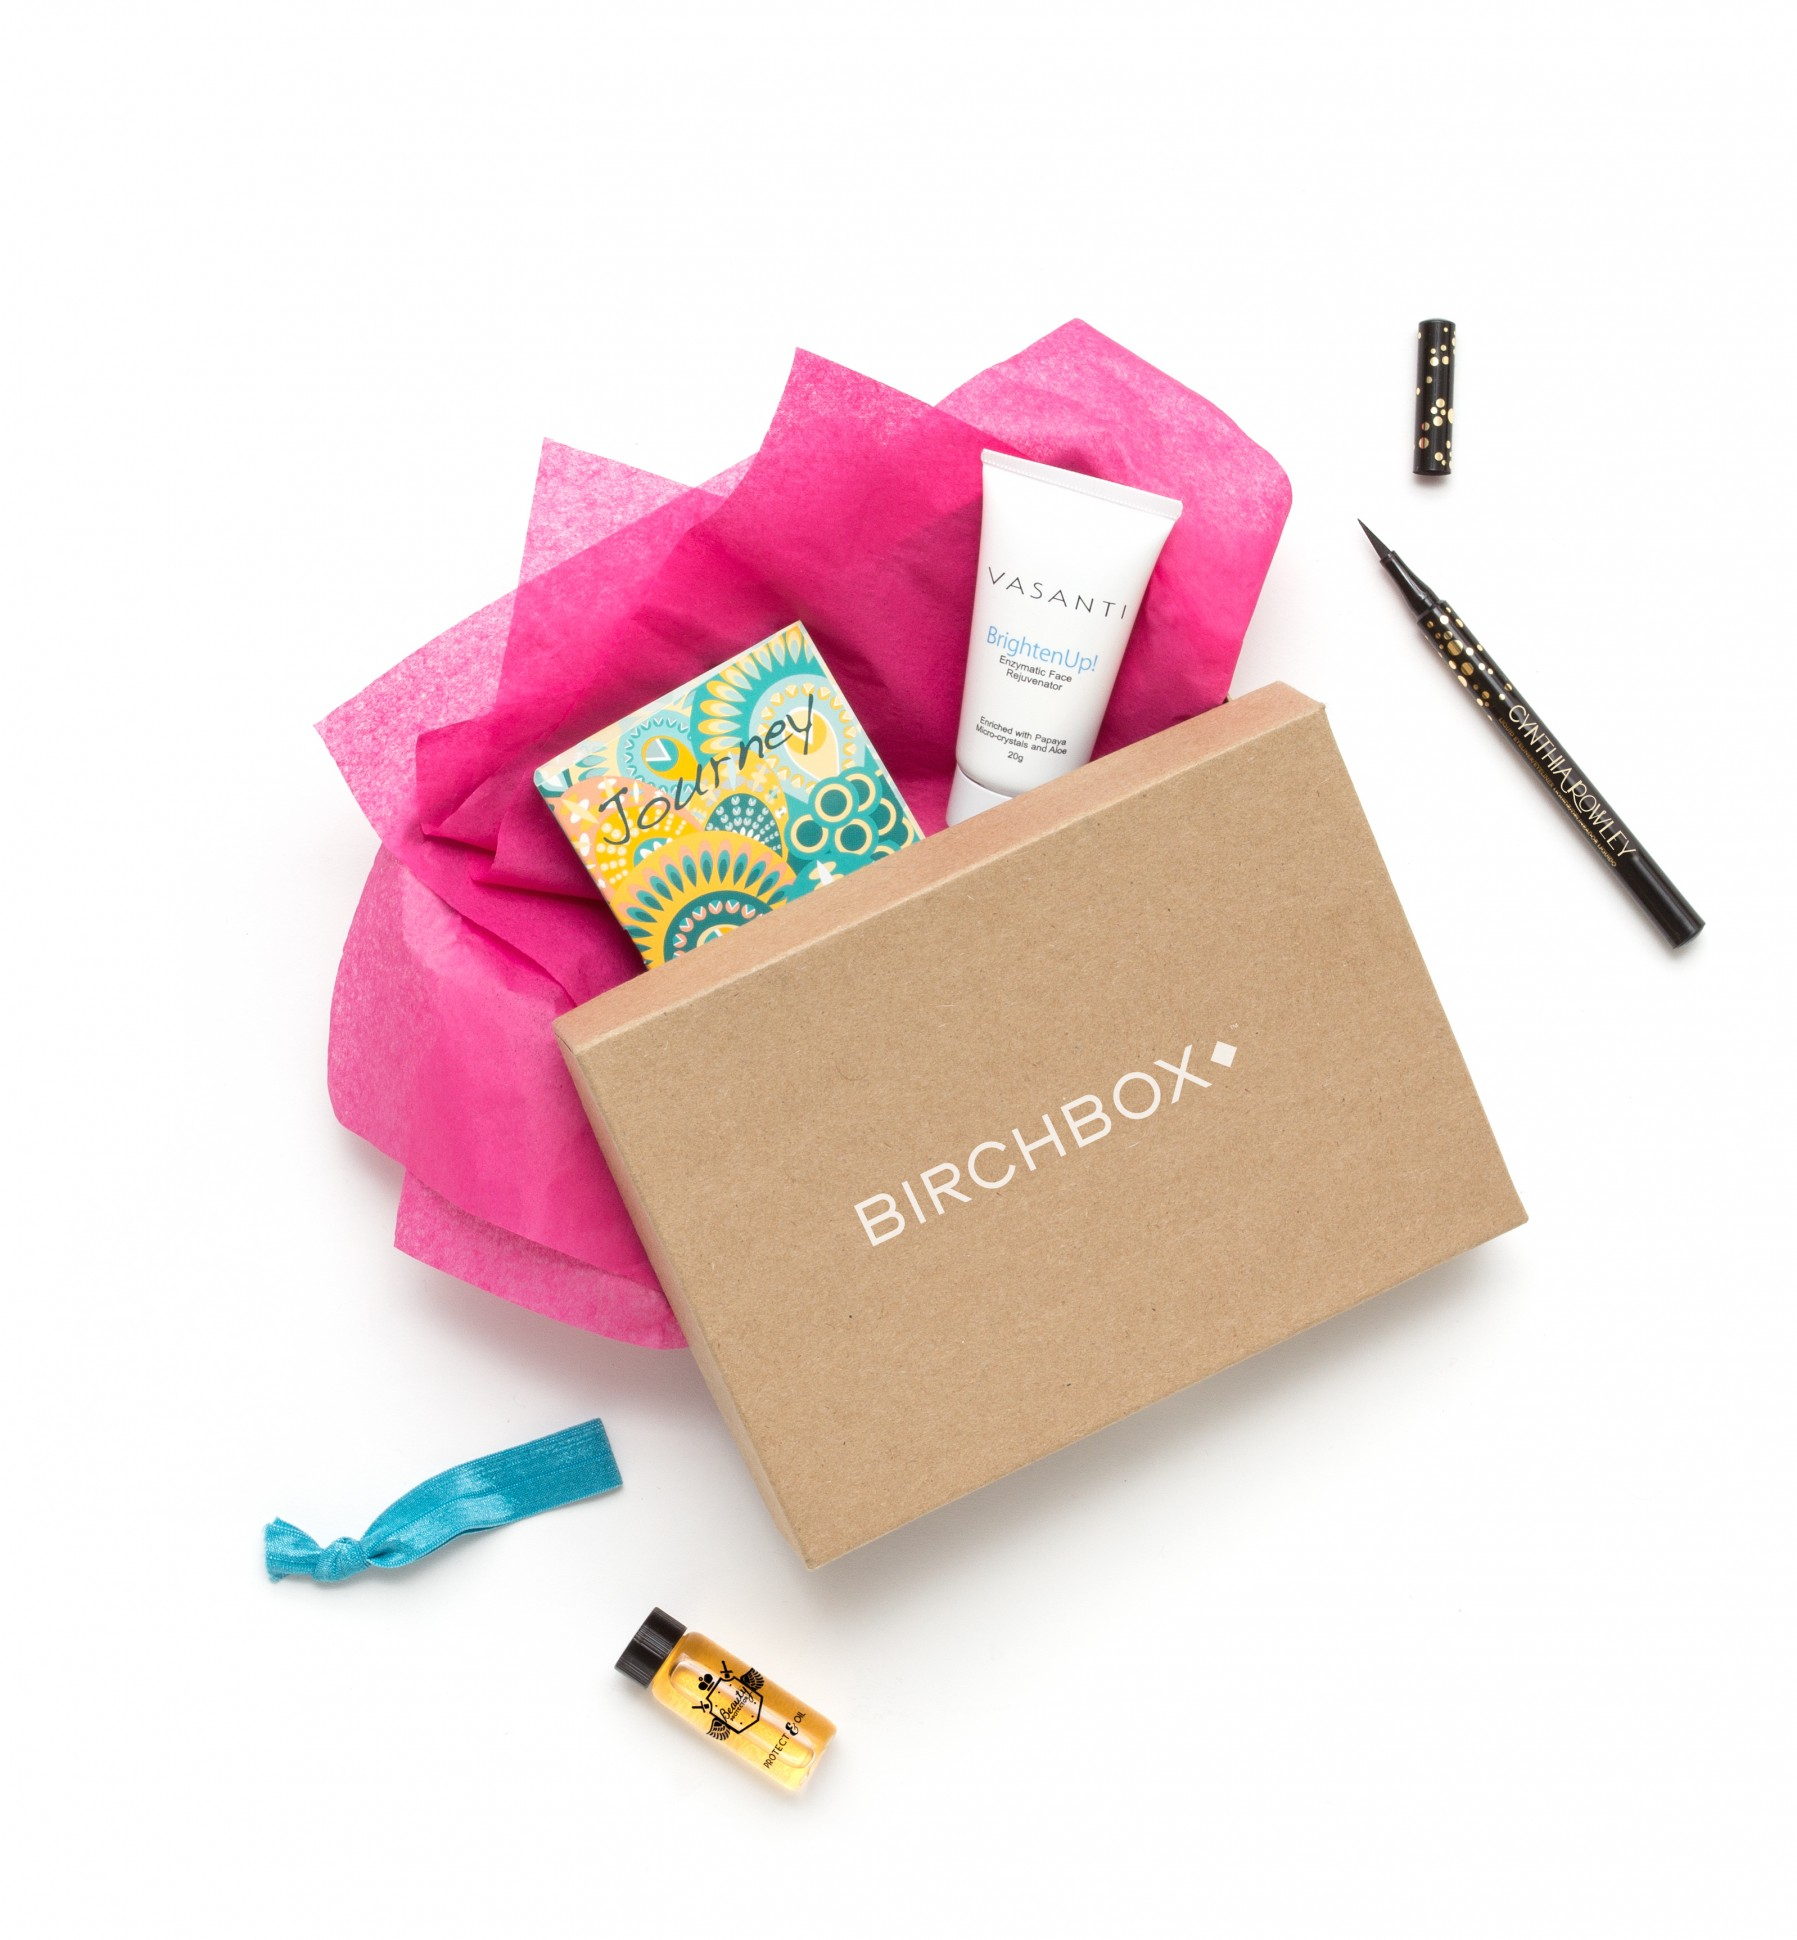 Consumer Marketing Done Right: The Story Of Birchbox